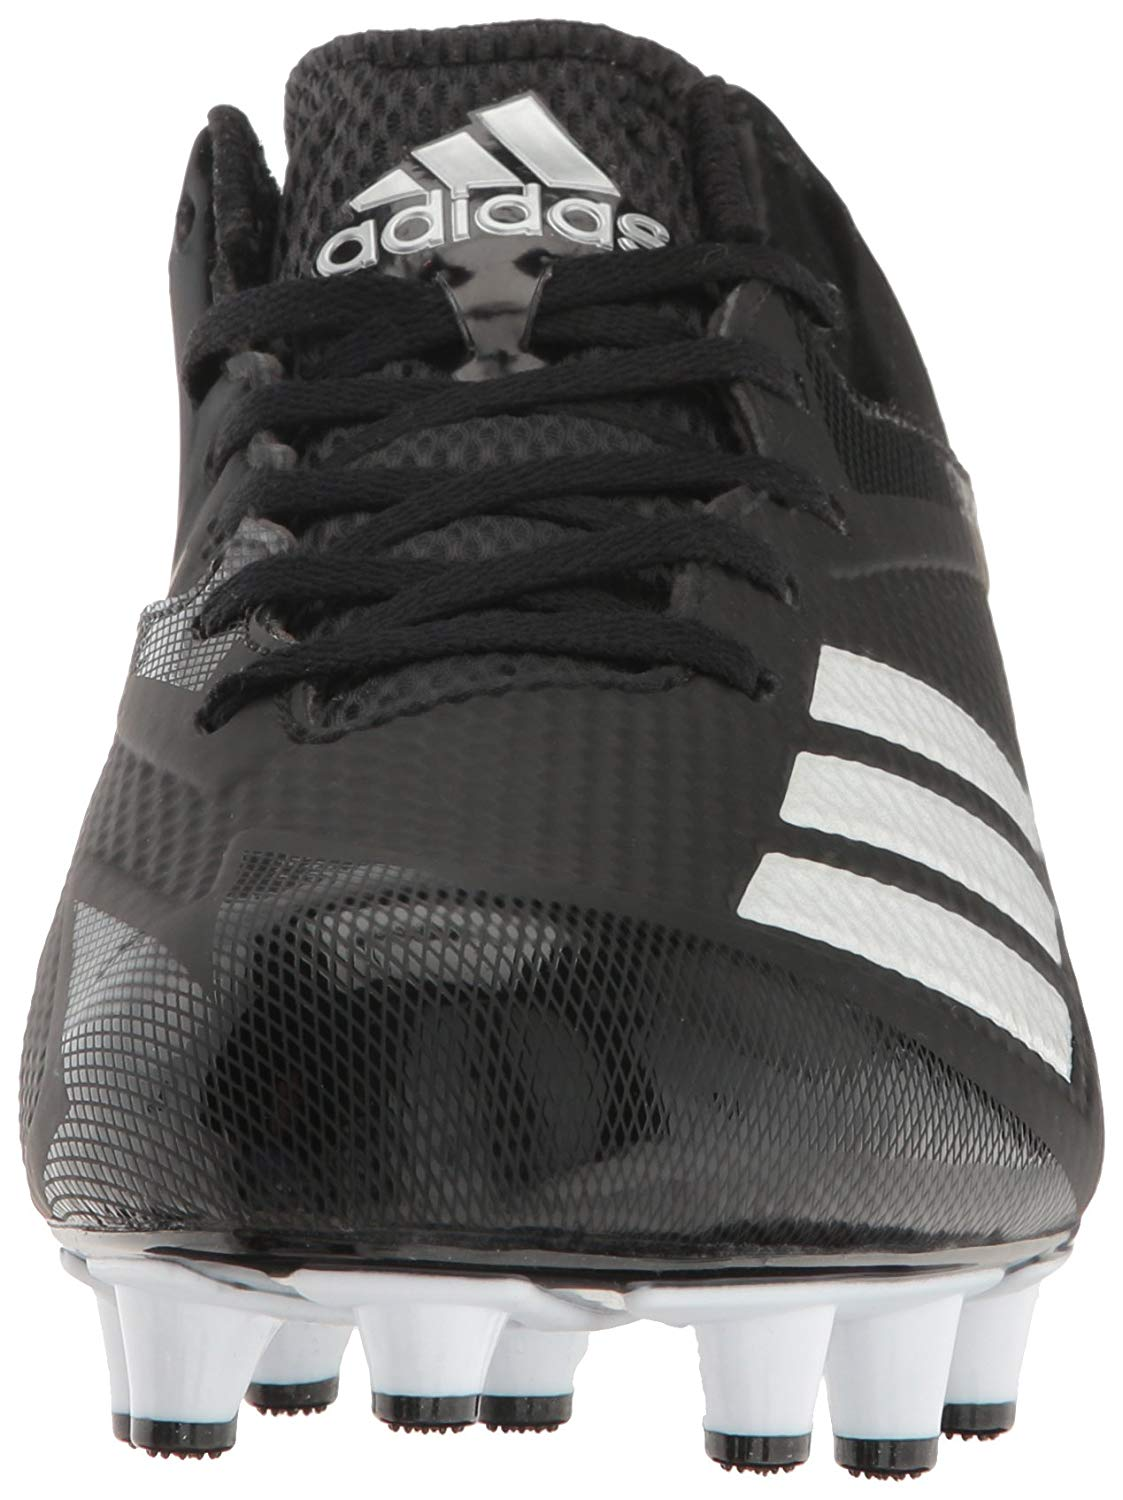 01c775ffd6b5 adidas Men's Freak X Carbon Mid Football, Black/White/Metallic ...